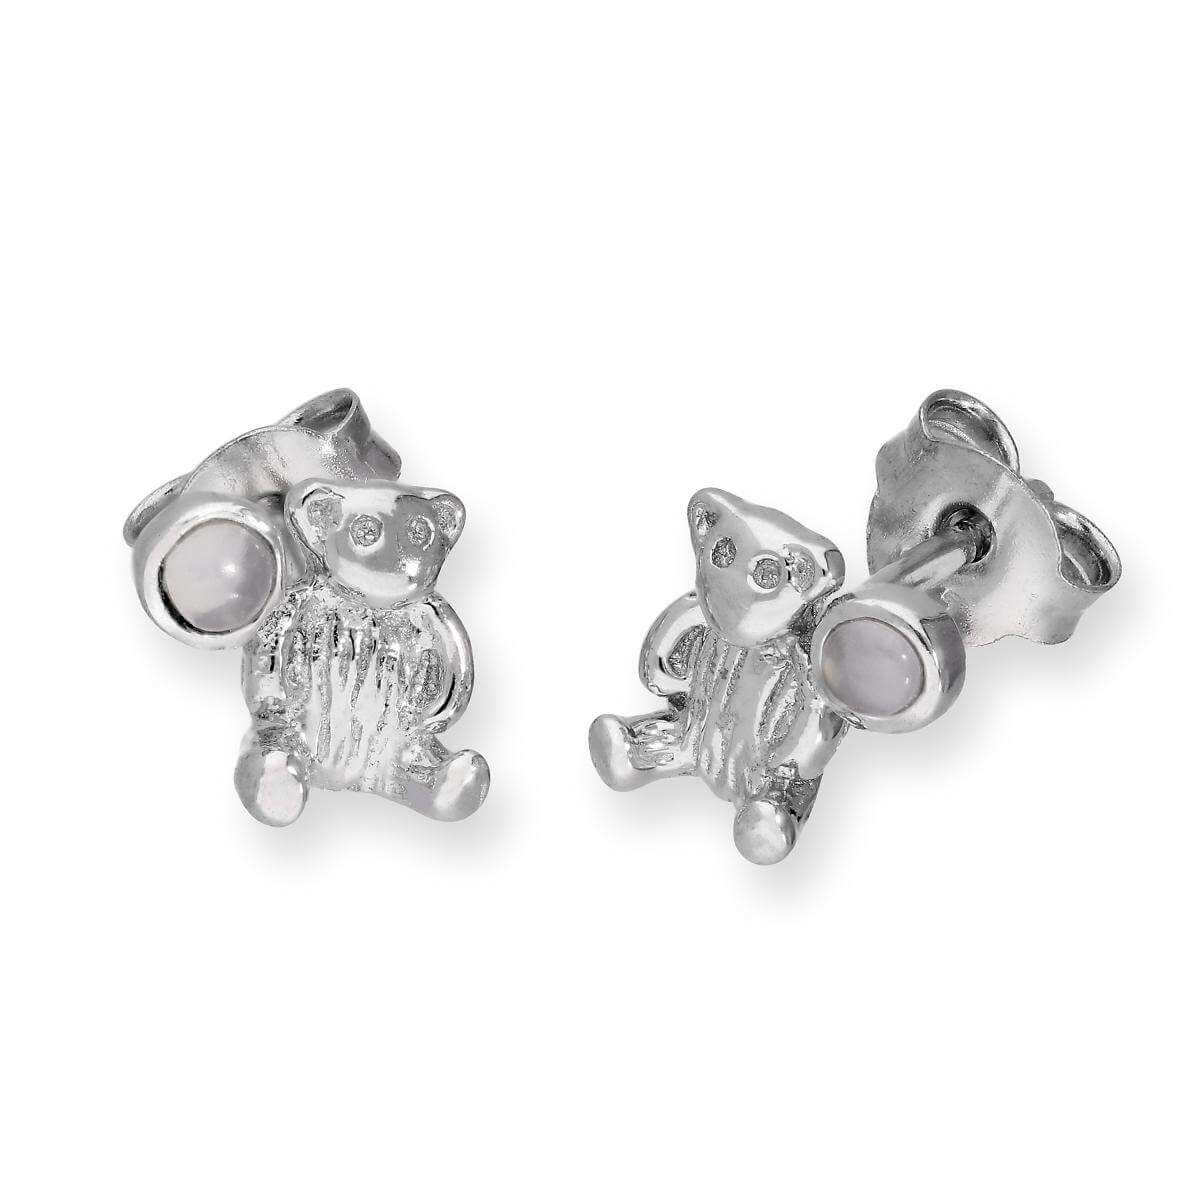 Sterling Silver Teddy Bear & Moonstone June Birthstone Stud Earrings